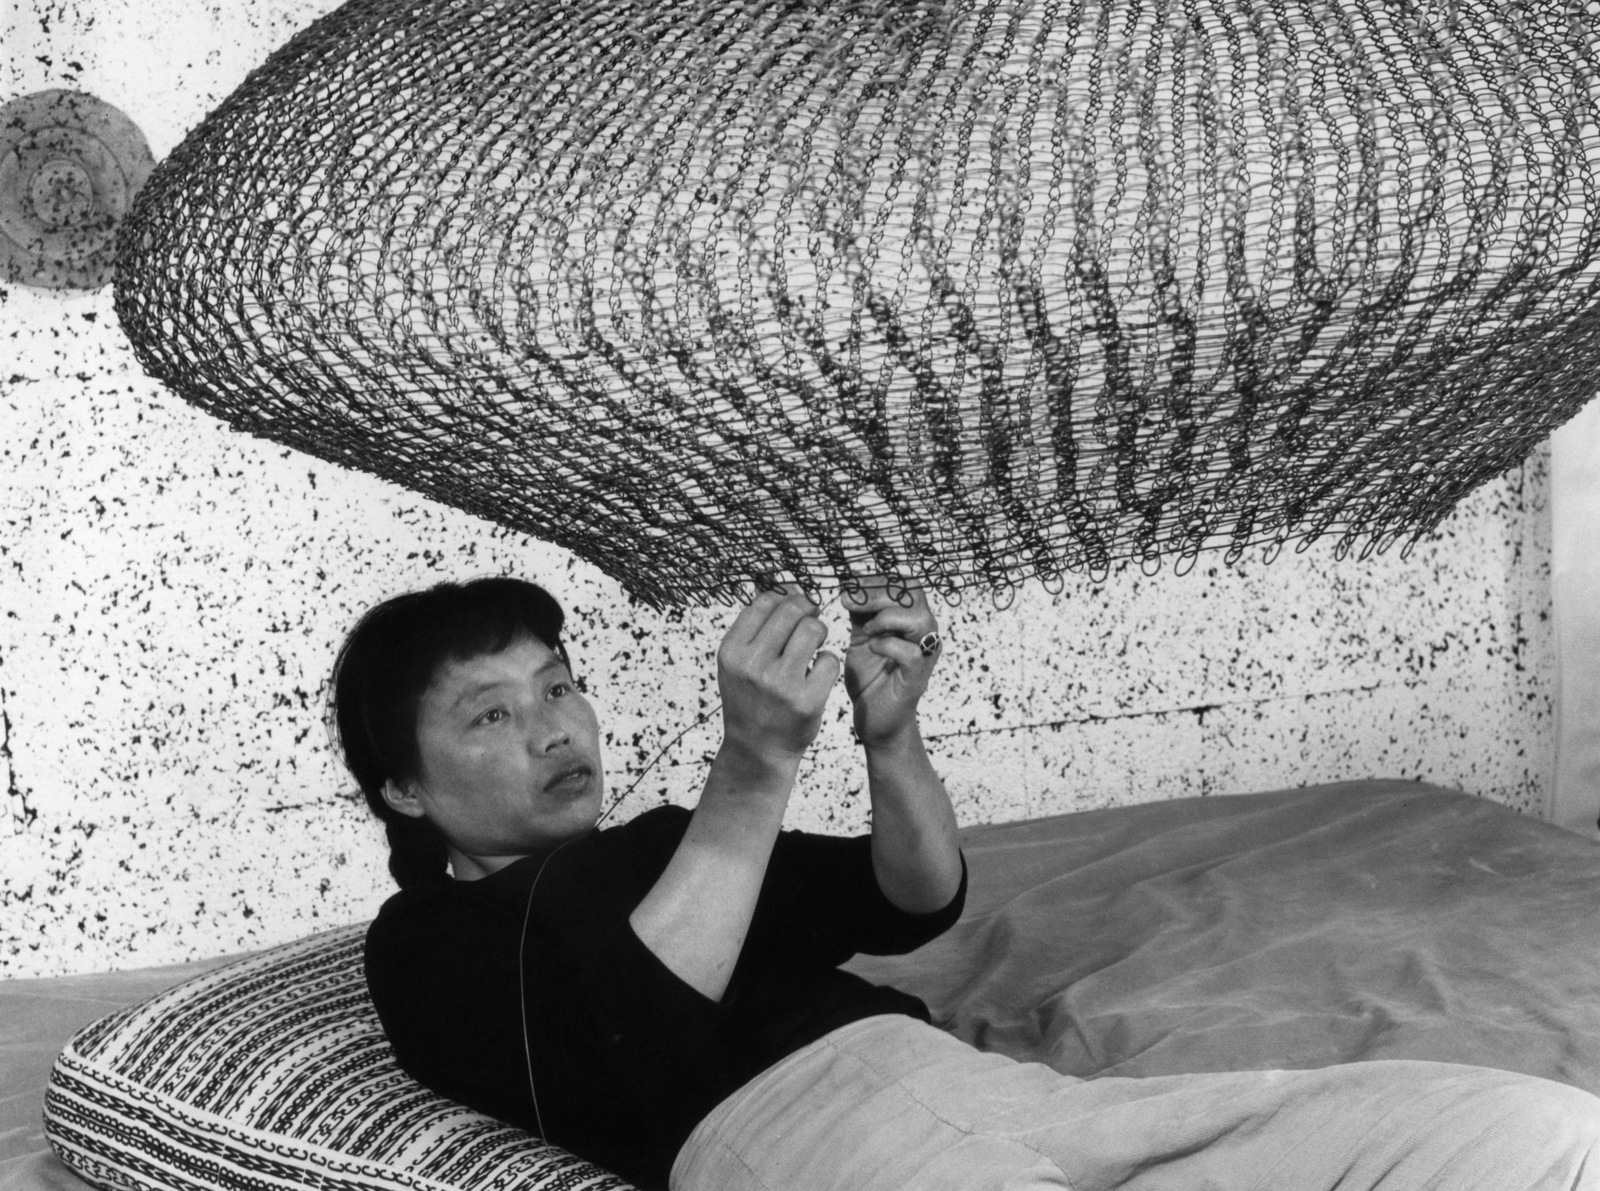 Ruth Asawa, Japanese Artist Who Spent Time In Internment Camp, Gets ...